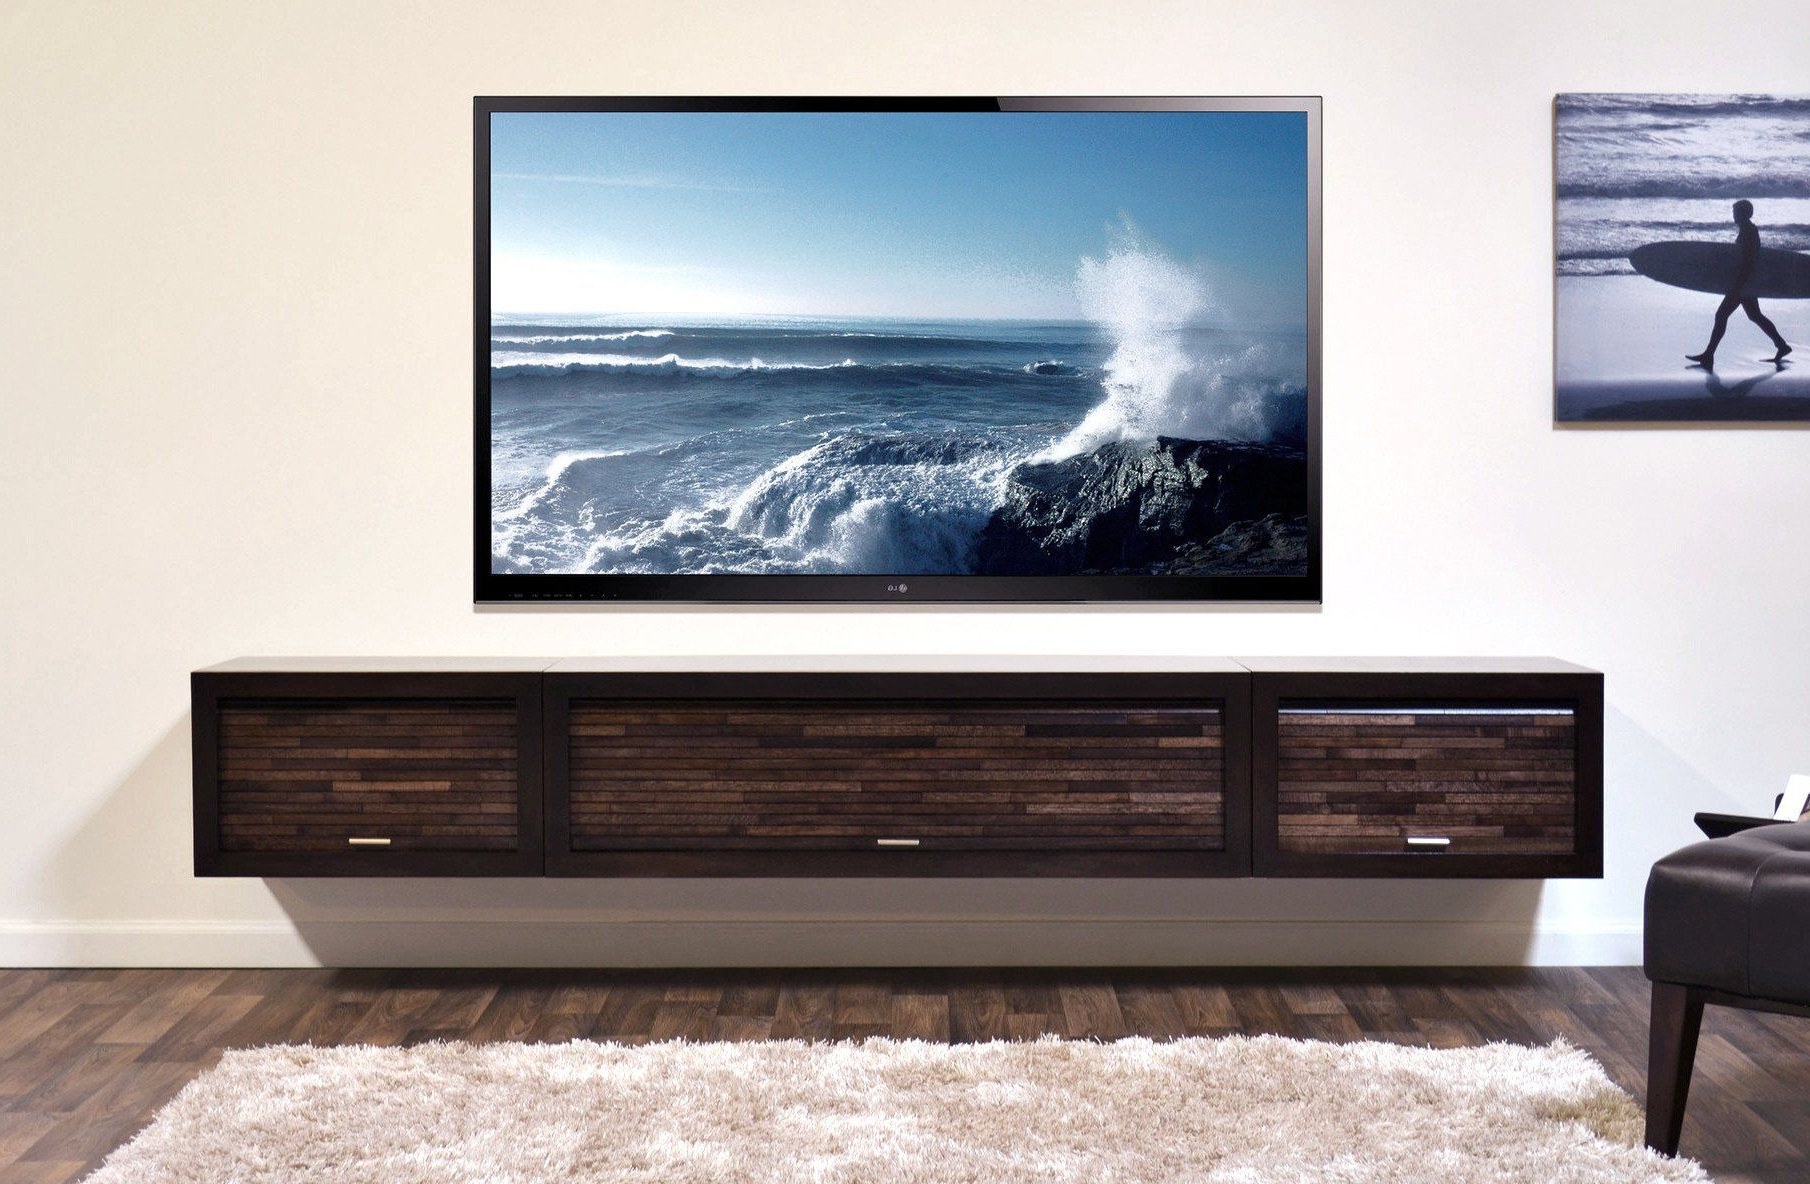 Entertainment Center With Regard To Well Known Floating Tv Shelf Wall Mounted Storage Shelf Modern Tv Stands (View 8 of 10)